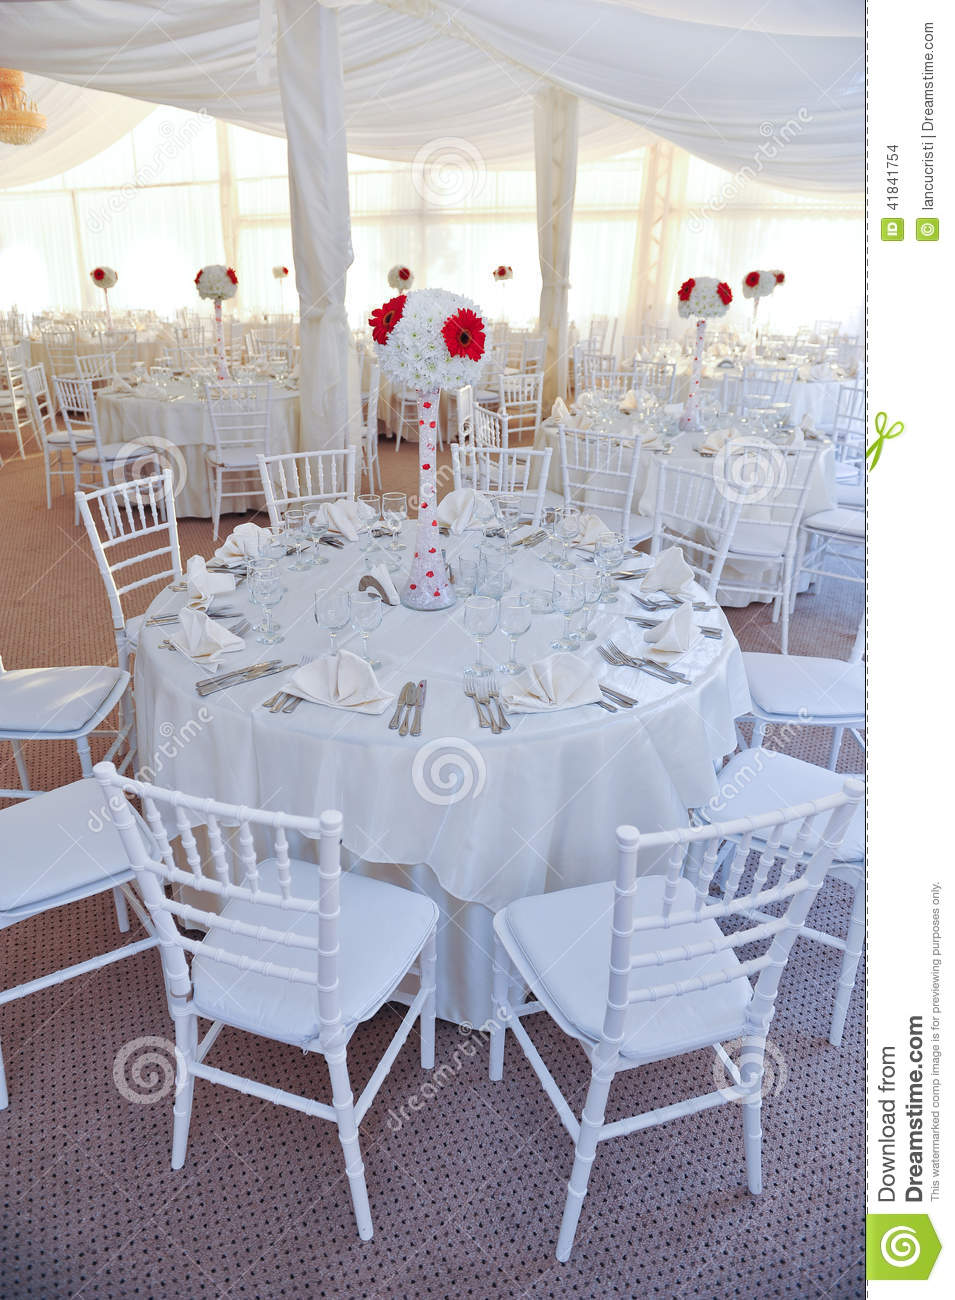 Tables Set For An Event Party Or Wedding Reception Stock Photo ...